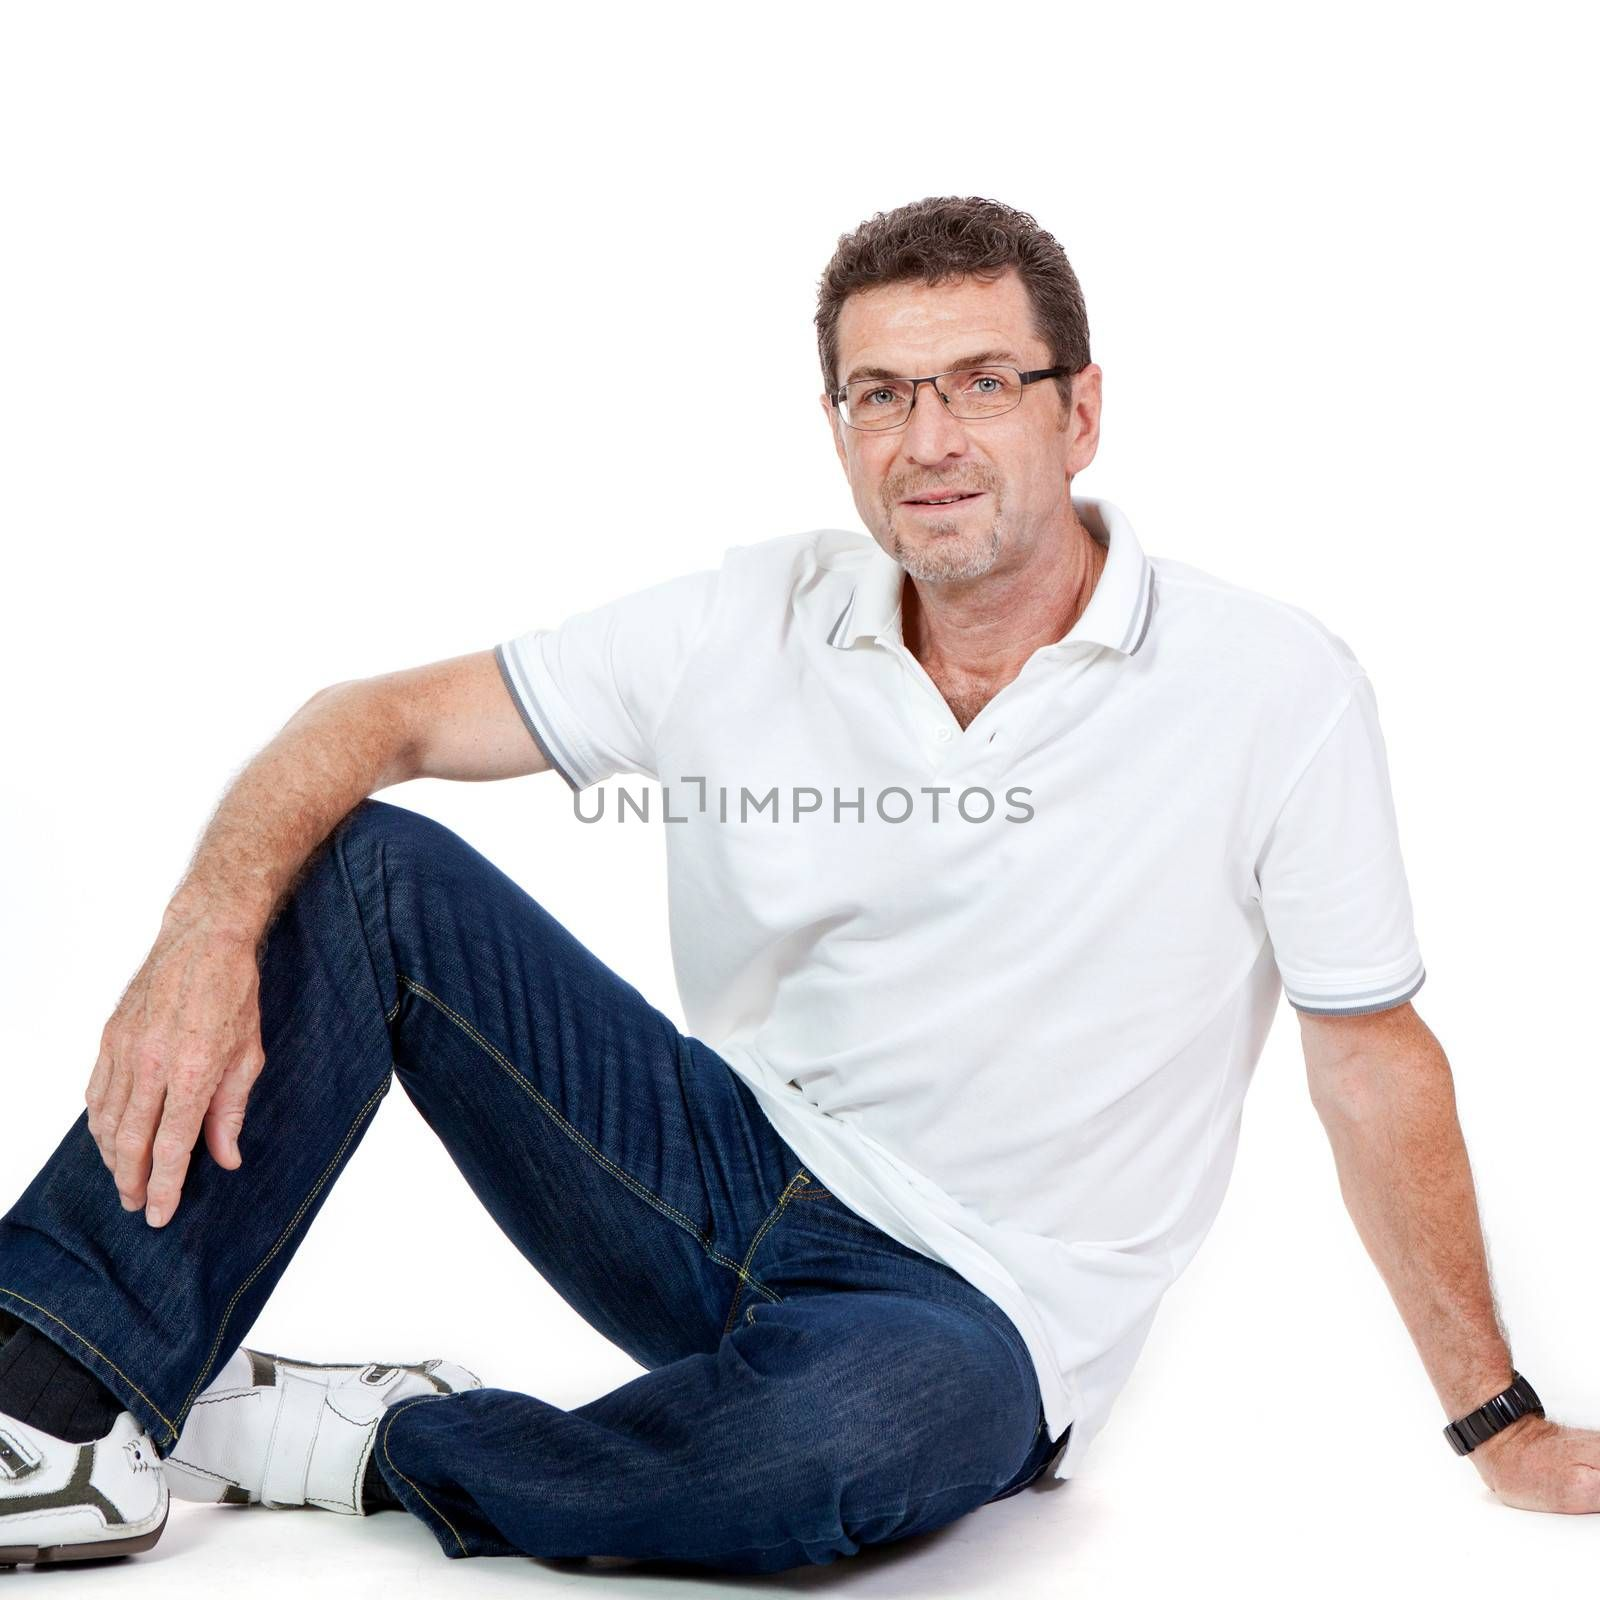 attractive healthy adult man sitting on floor with glasses and jeans t-shirt casual lifestyle isolated